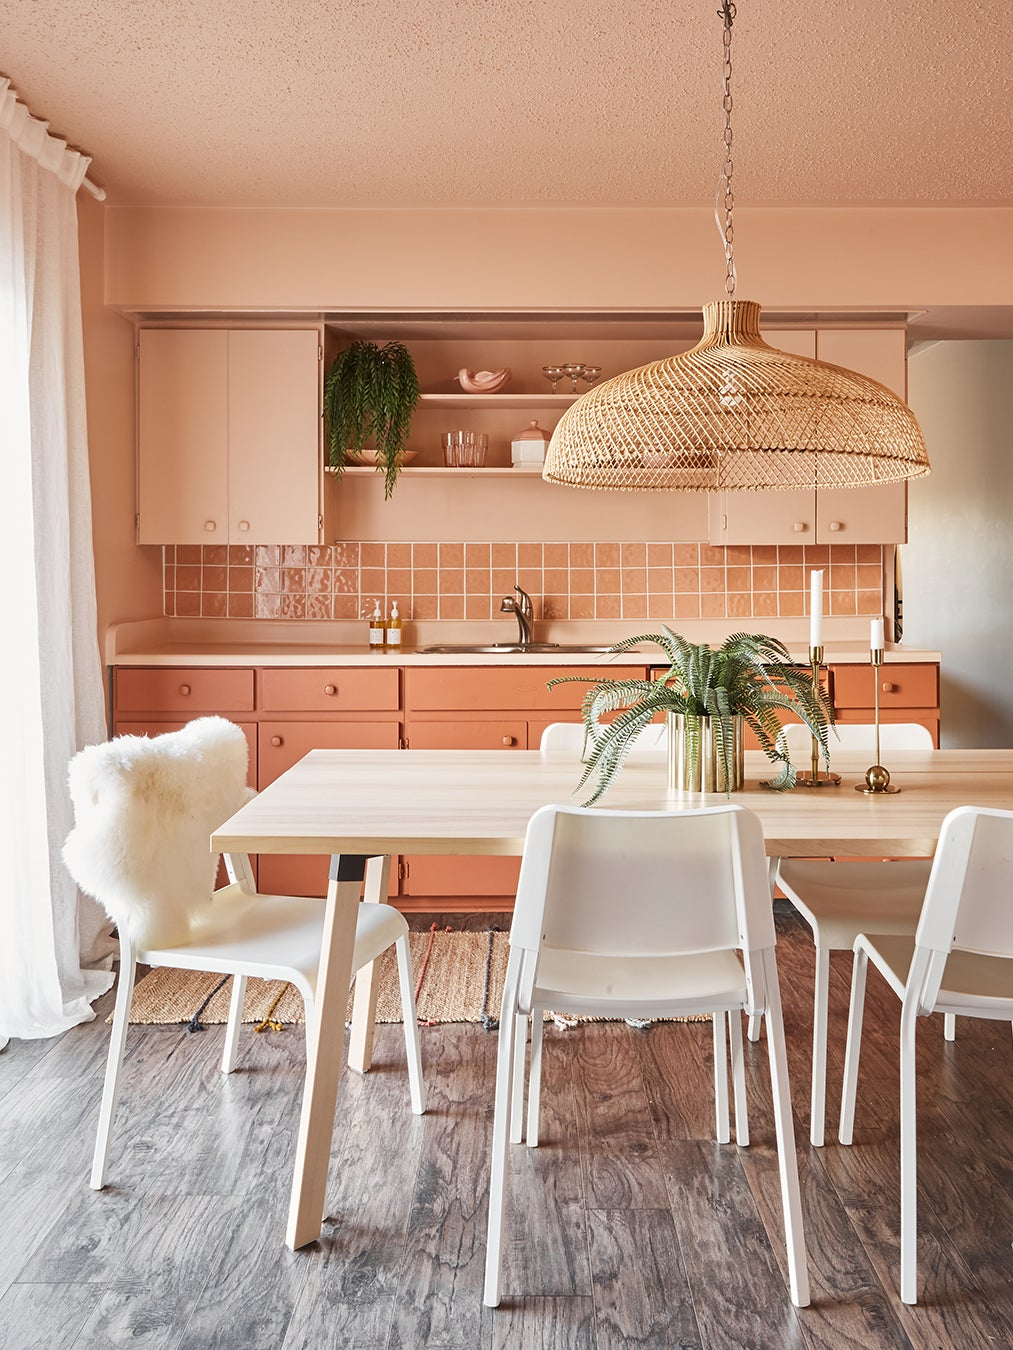 How to Make $2-Per-Square-Foot Tiles Look Luxe, and More Thrifty Reno Tips